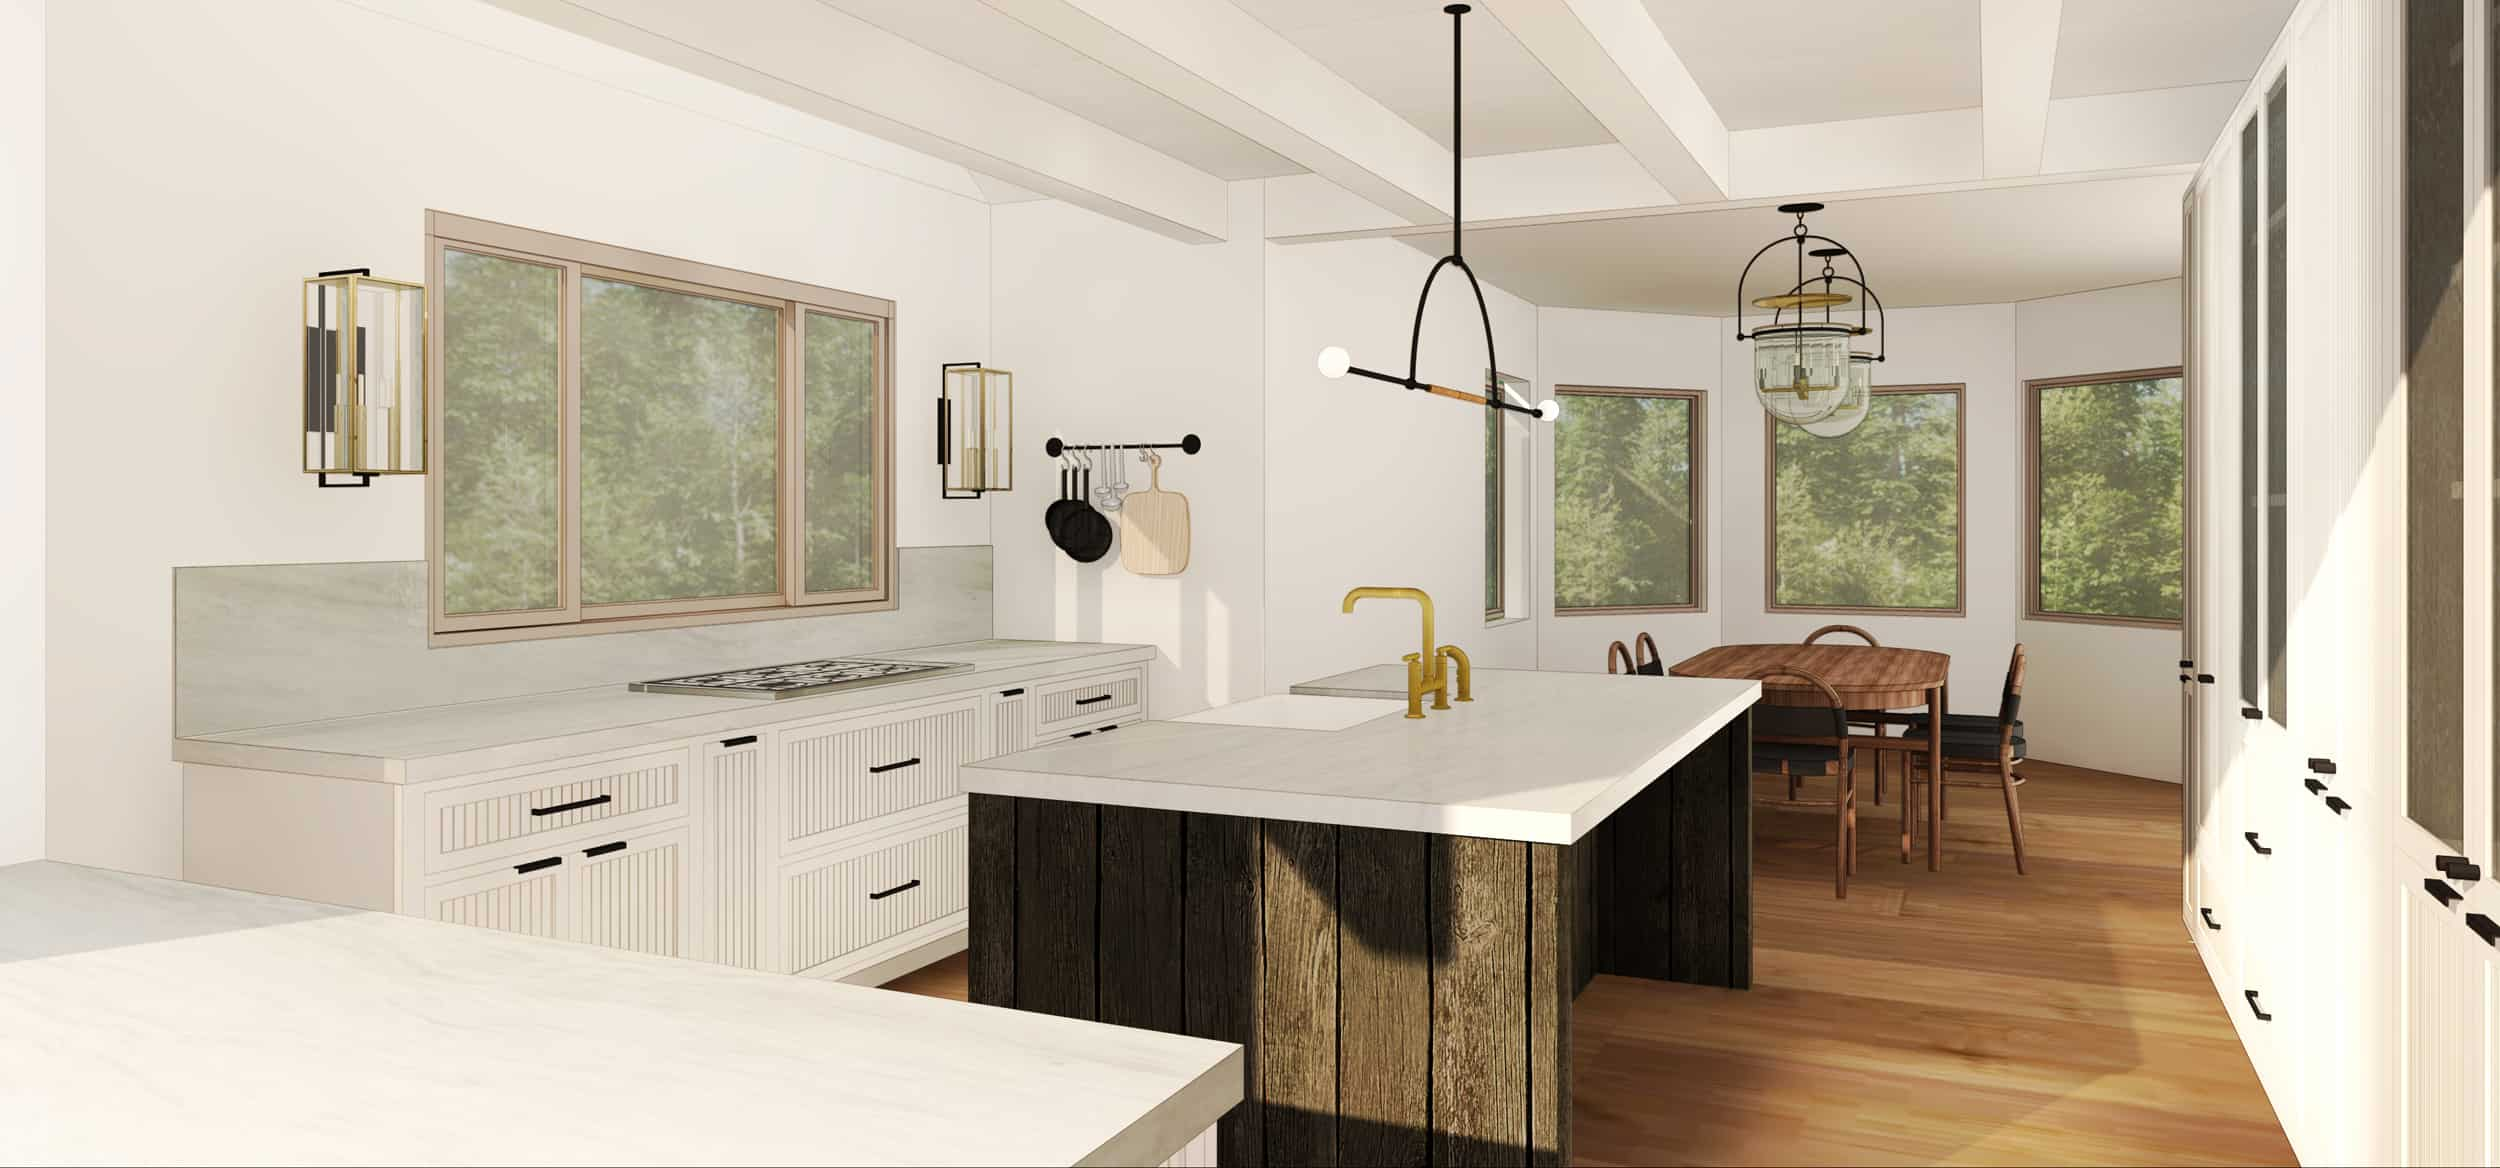 Emily Henderson Mountain Fixer Upper I Design You Decide Kitchen Ps Option1